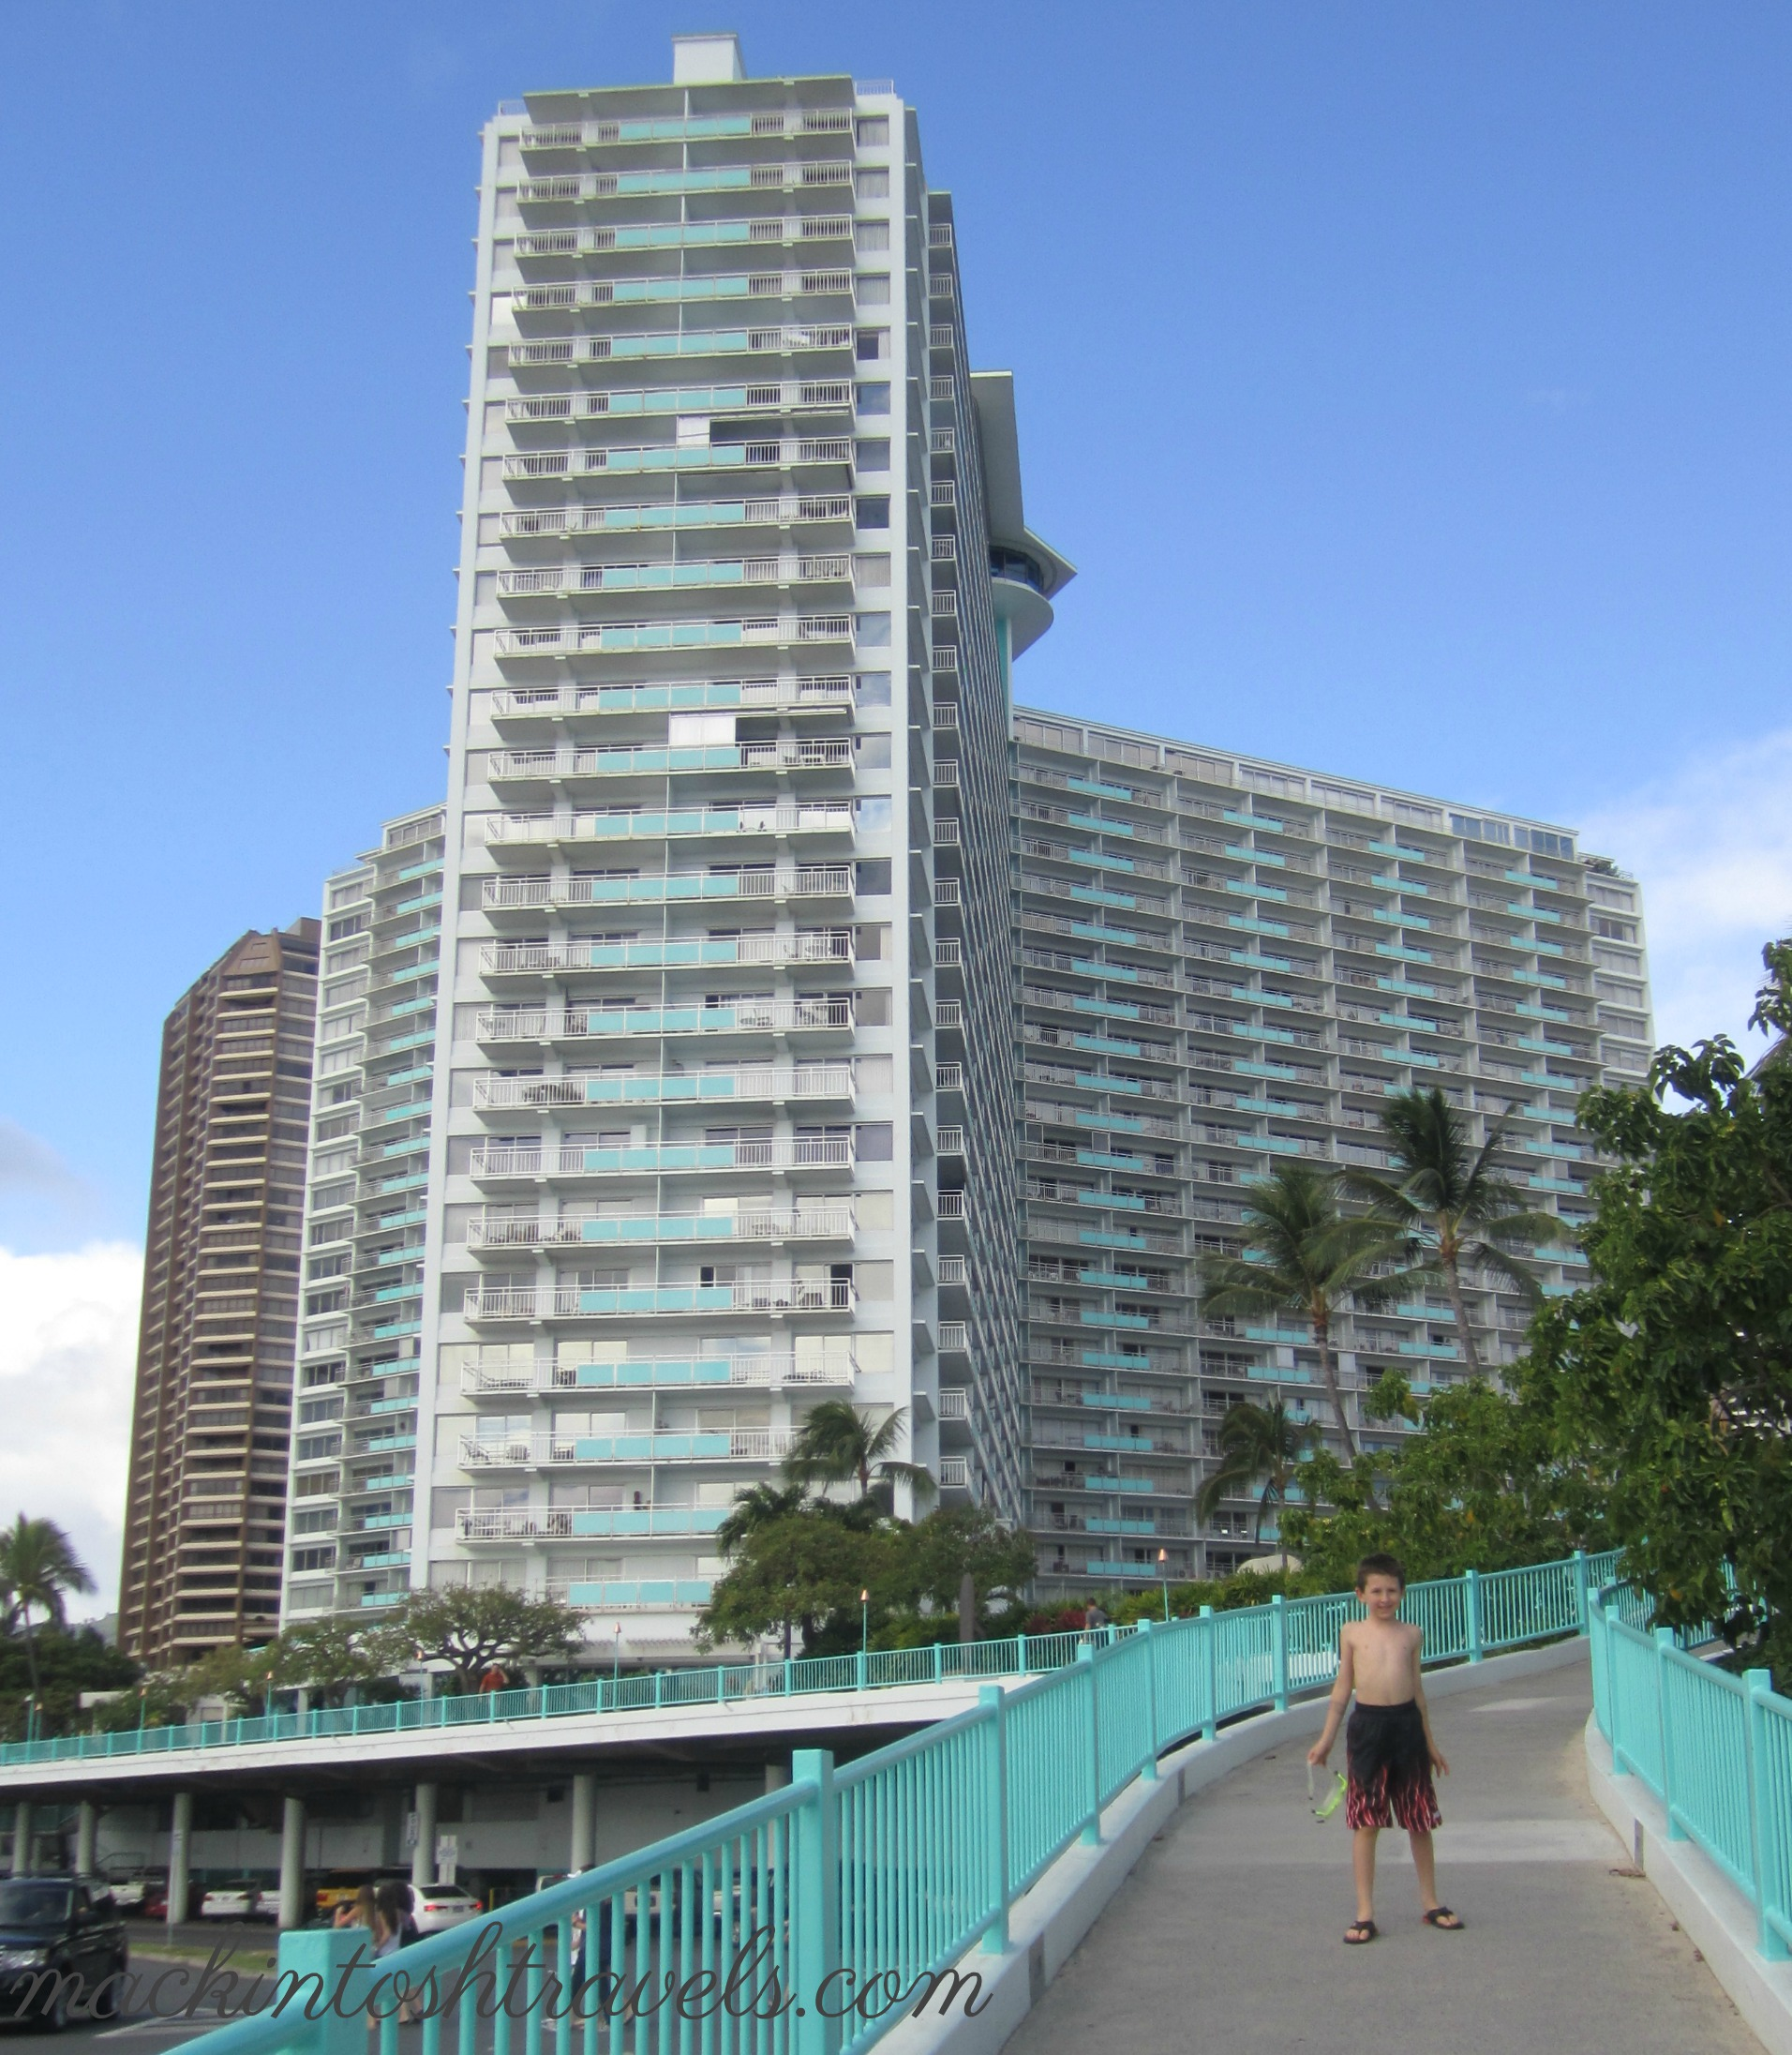 Ilikai Hotel & Luxury Suites-OAHU